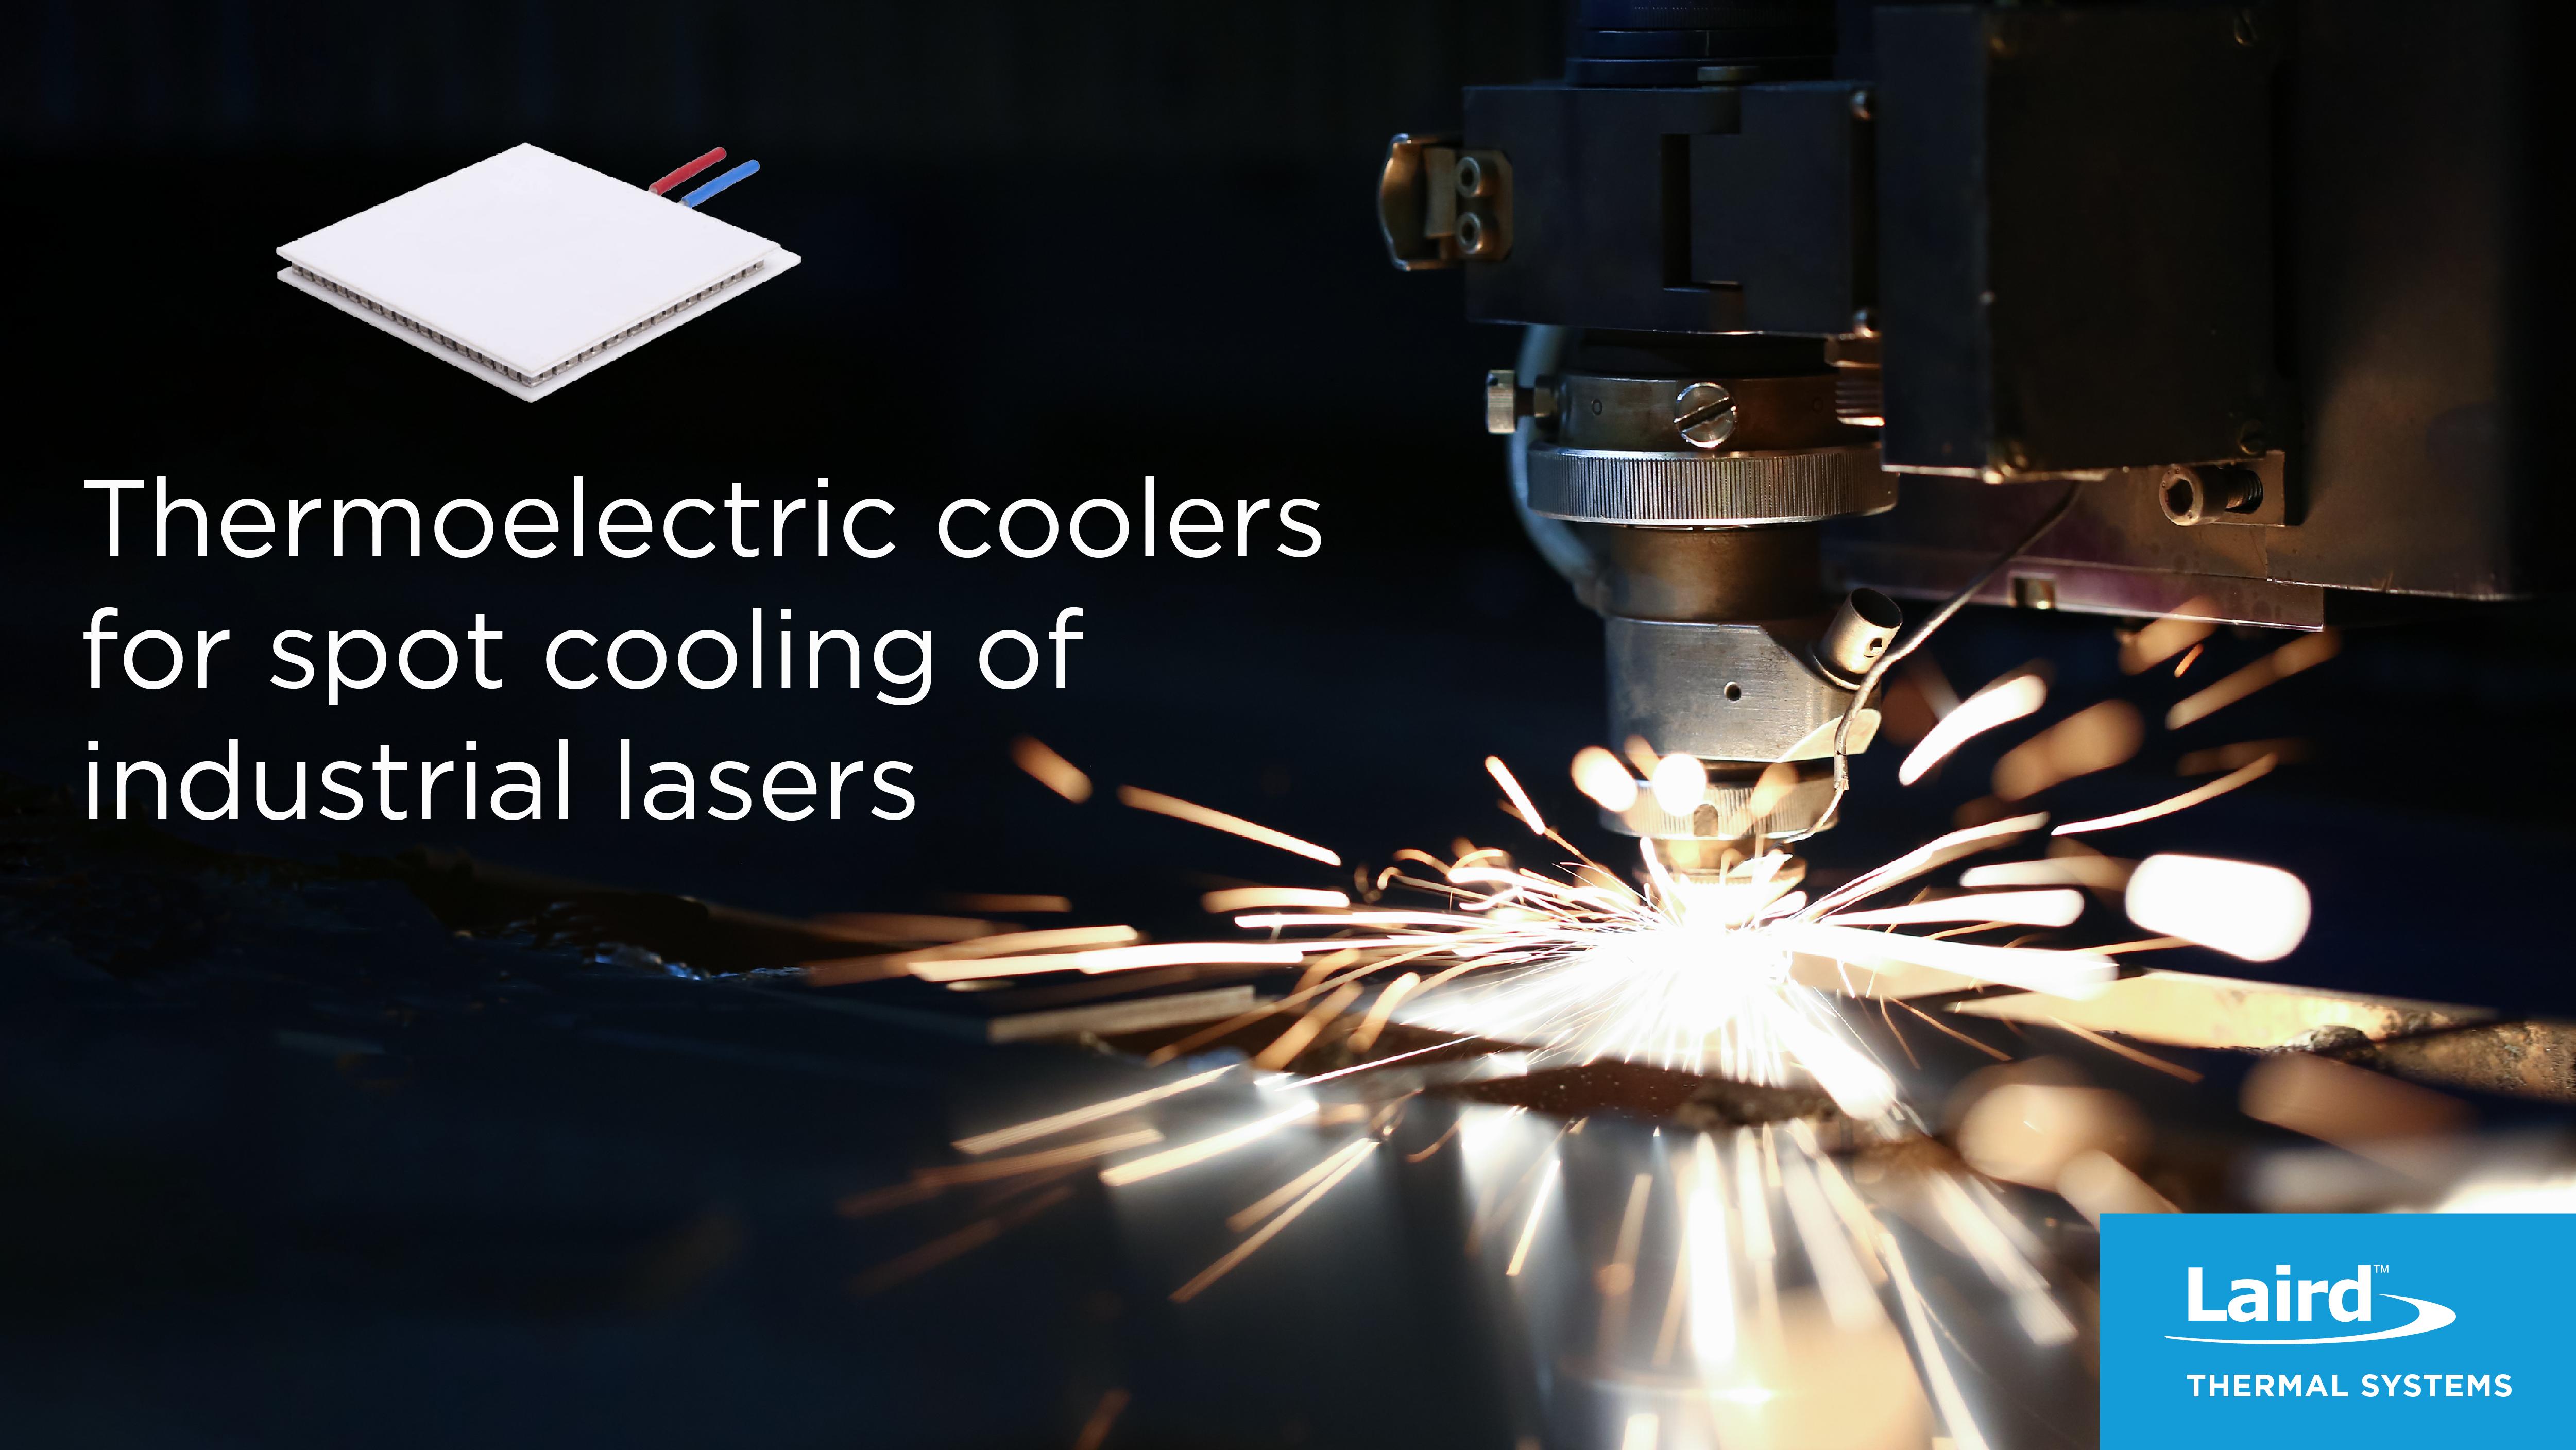 Thermoelectric-coolers-for-spot-cooling-of-industrial-lasers